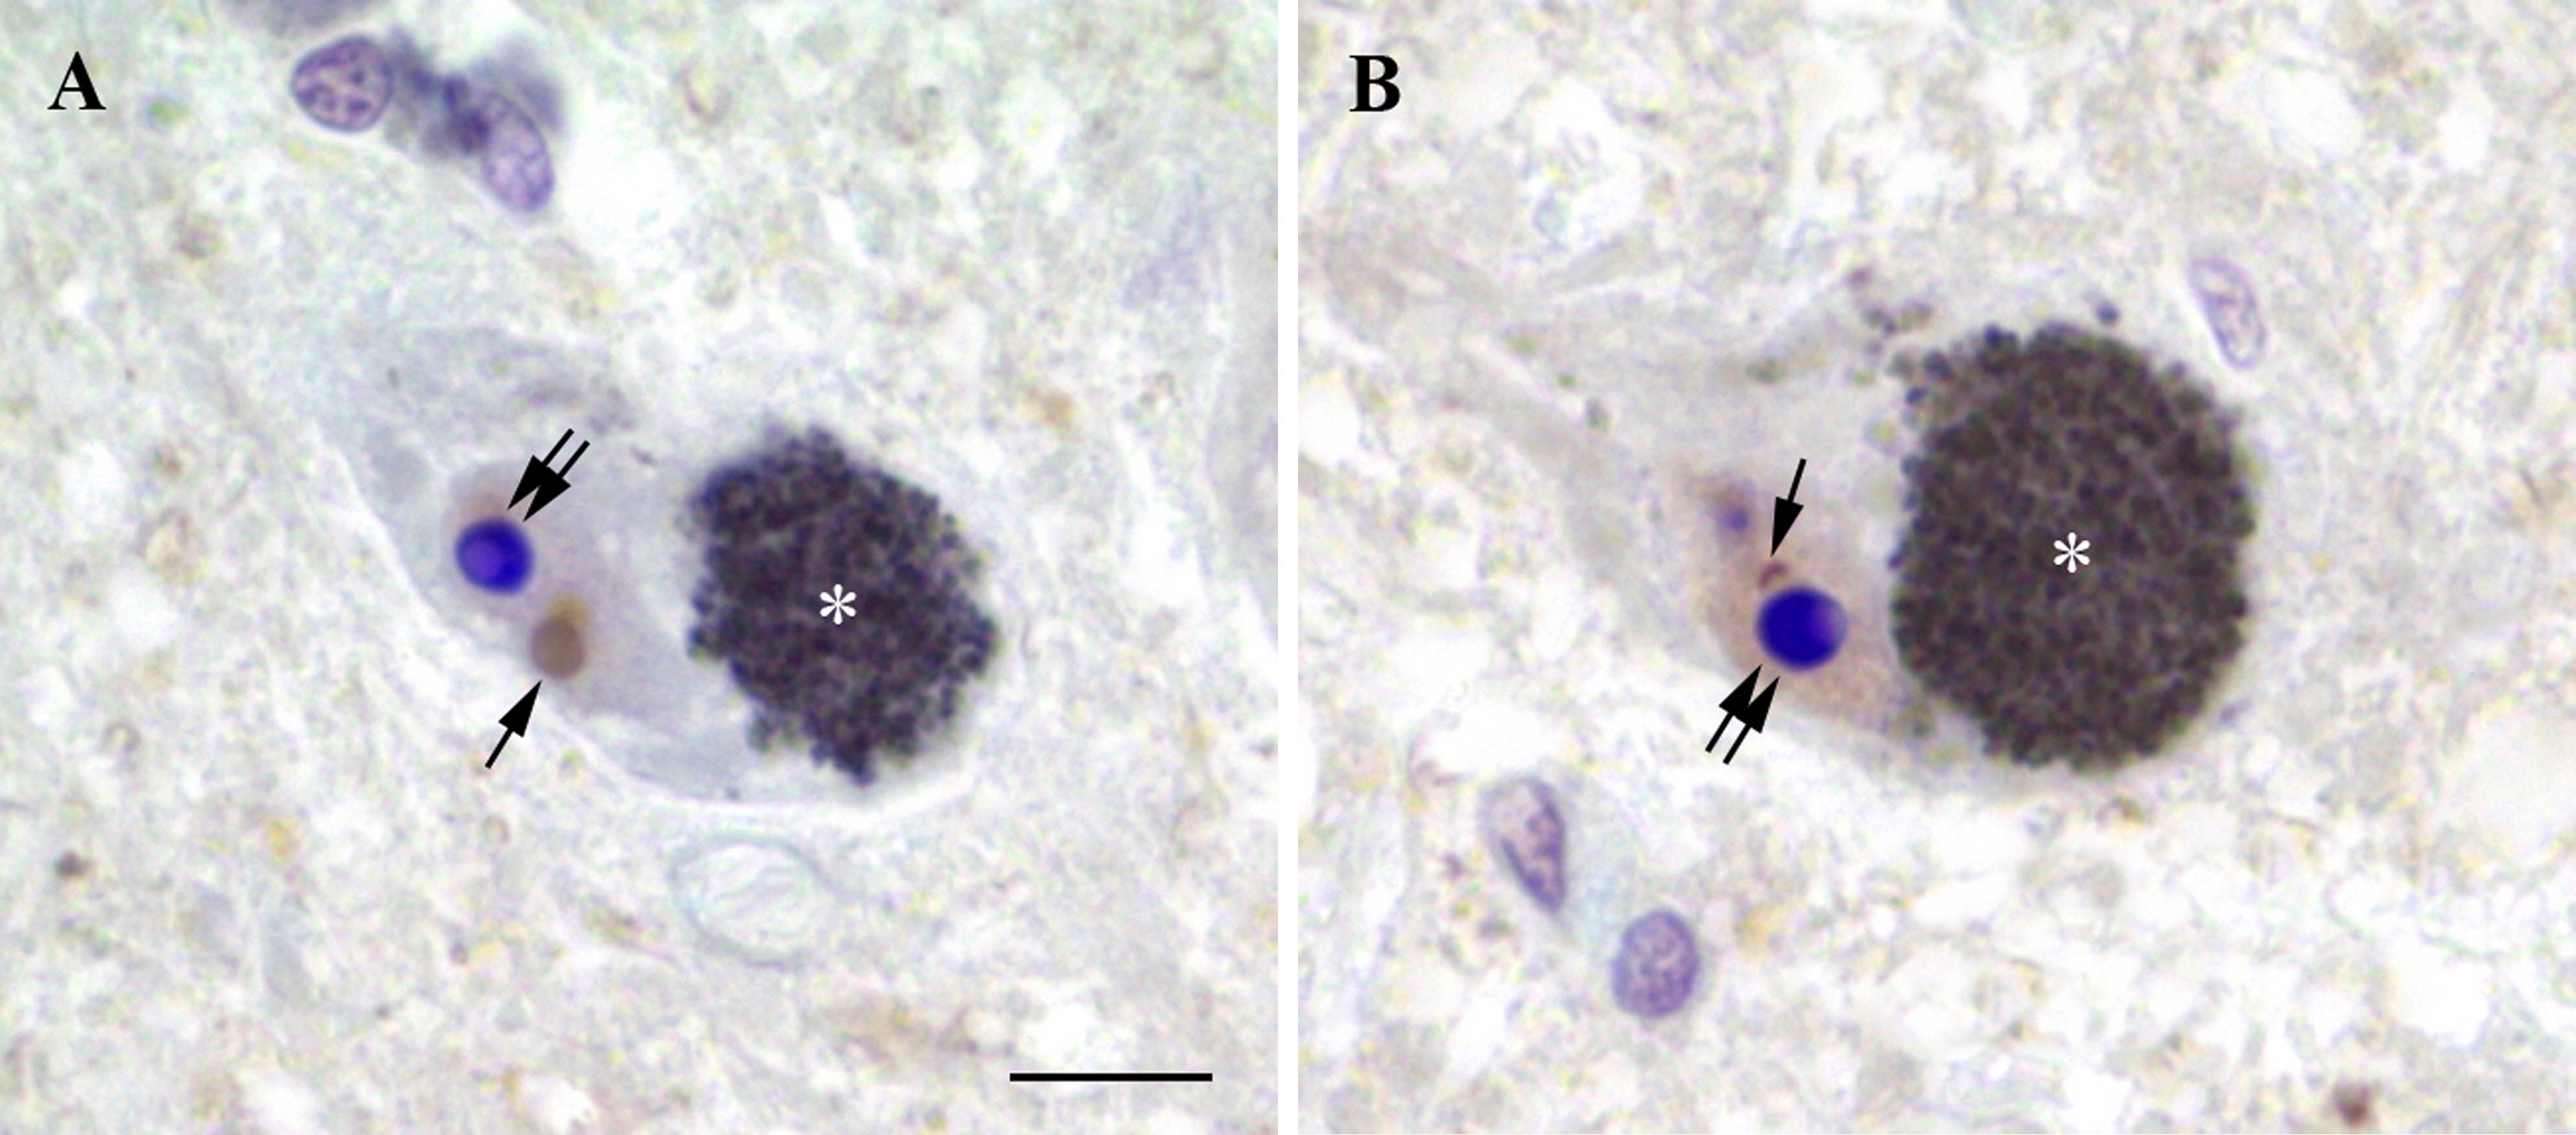 Figure 2. Ubiquitin immunohistochemistry of the human substantia nigra pars compacta. Asterisk (*) indicates neuromelanin accumulation in the neuronal cytoplasm; single arrow – ubiquitin-immunopositive (brown) structures in the neuronal nucleus; double arrow – nucleolus. Note the weak ubiquitin immunoreactivity in the nucleoplasm (B). Counterstained with cresyl violet. Bar scale – 10 µm.